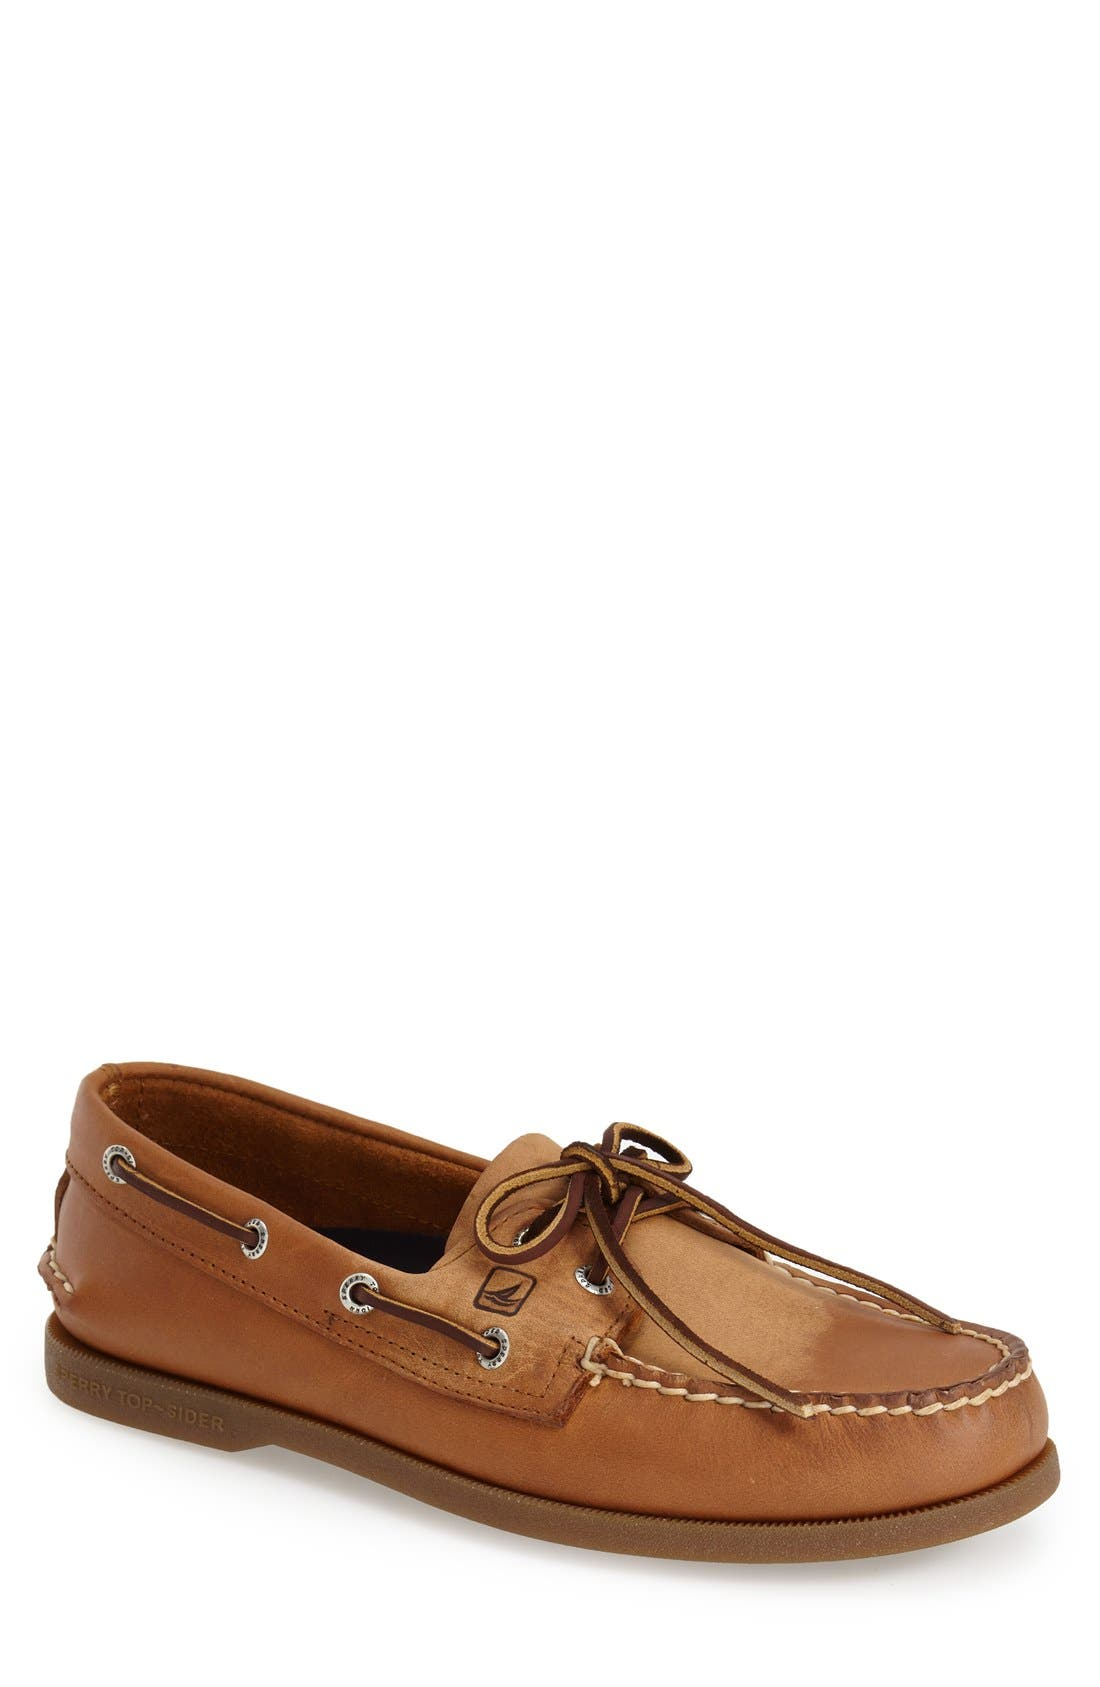 SPERRY, 'Authentic Original' Boat Shoe, Main thumbnail 1, color, 205